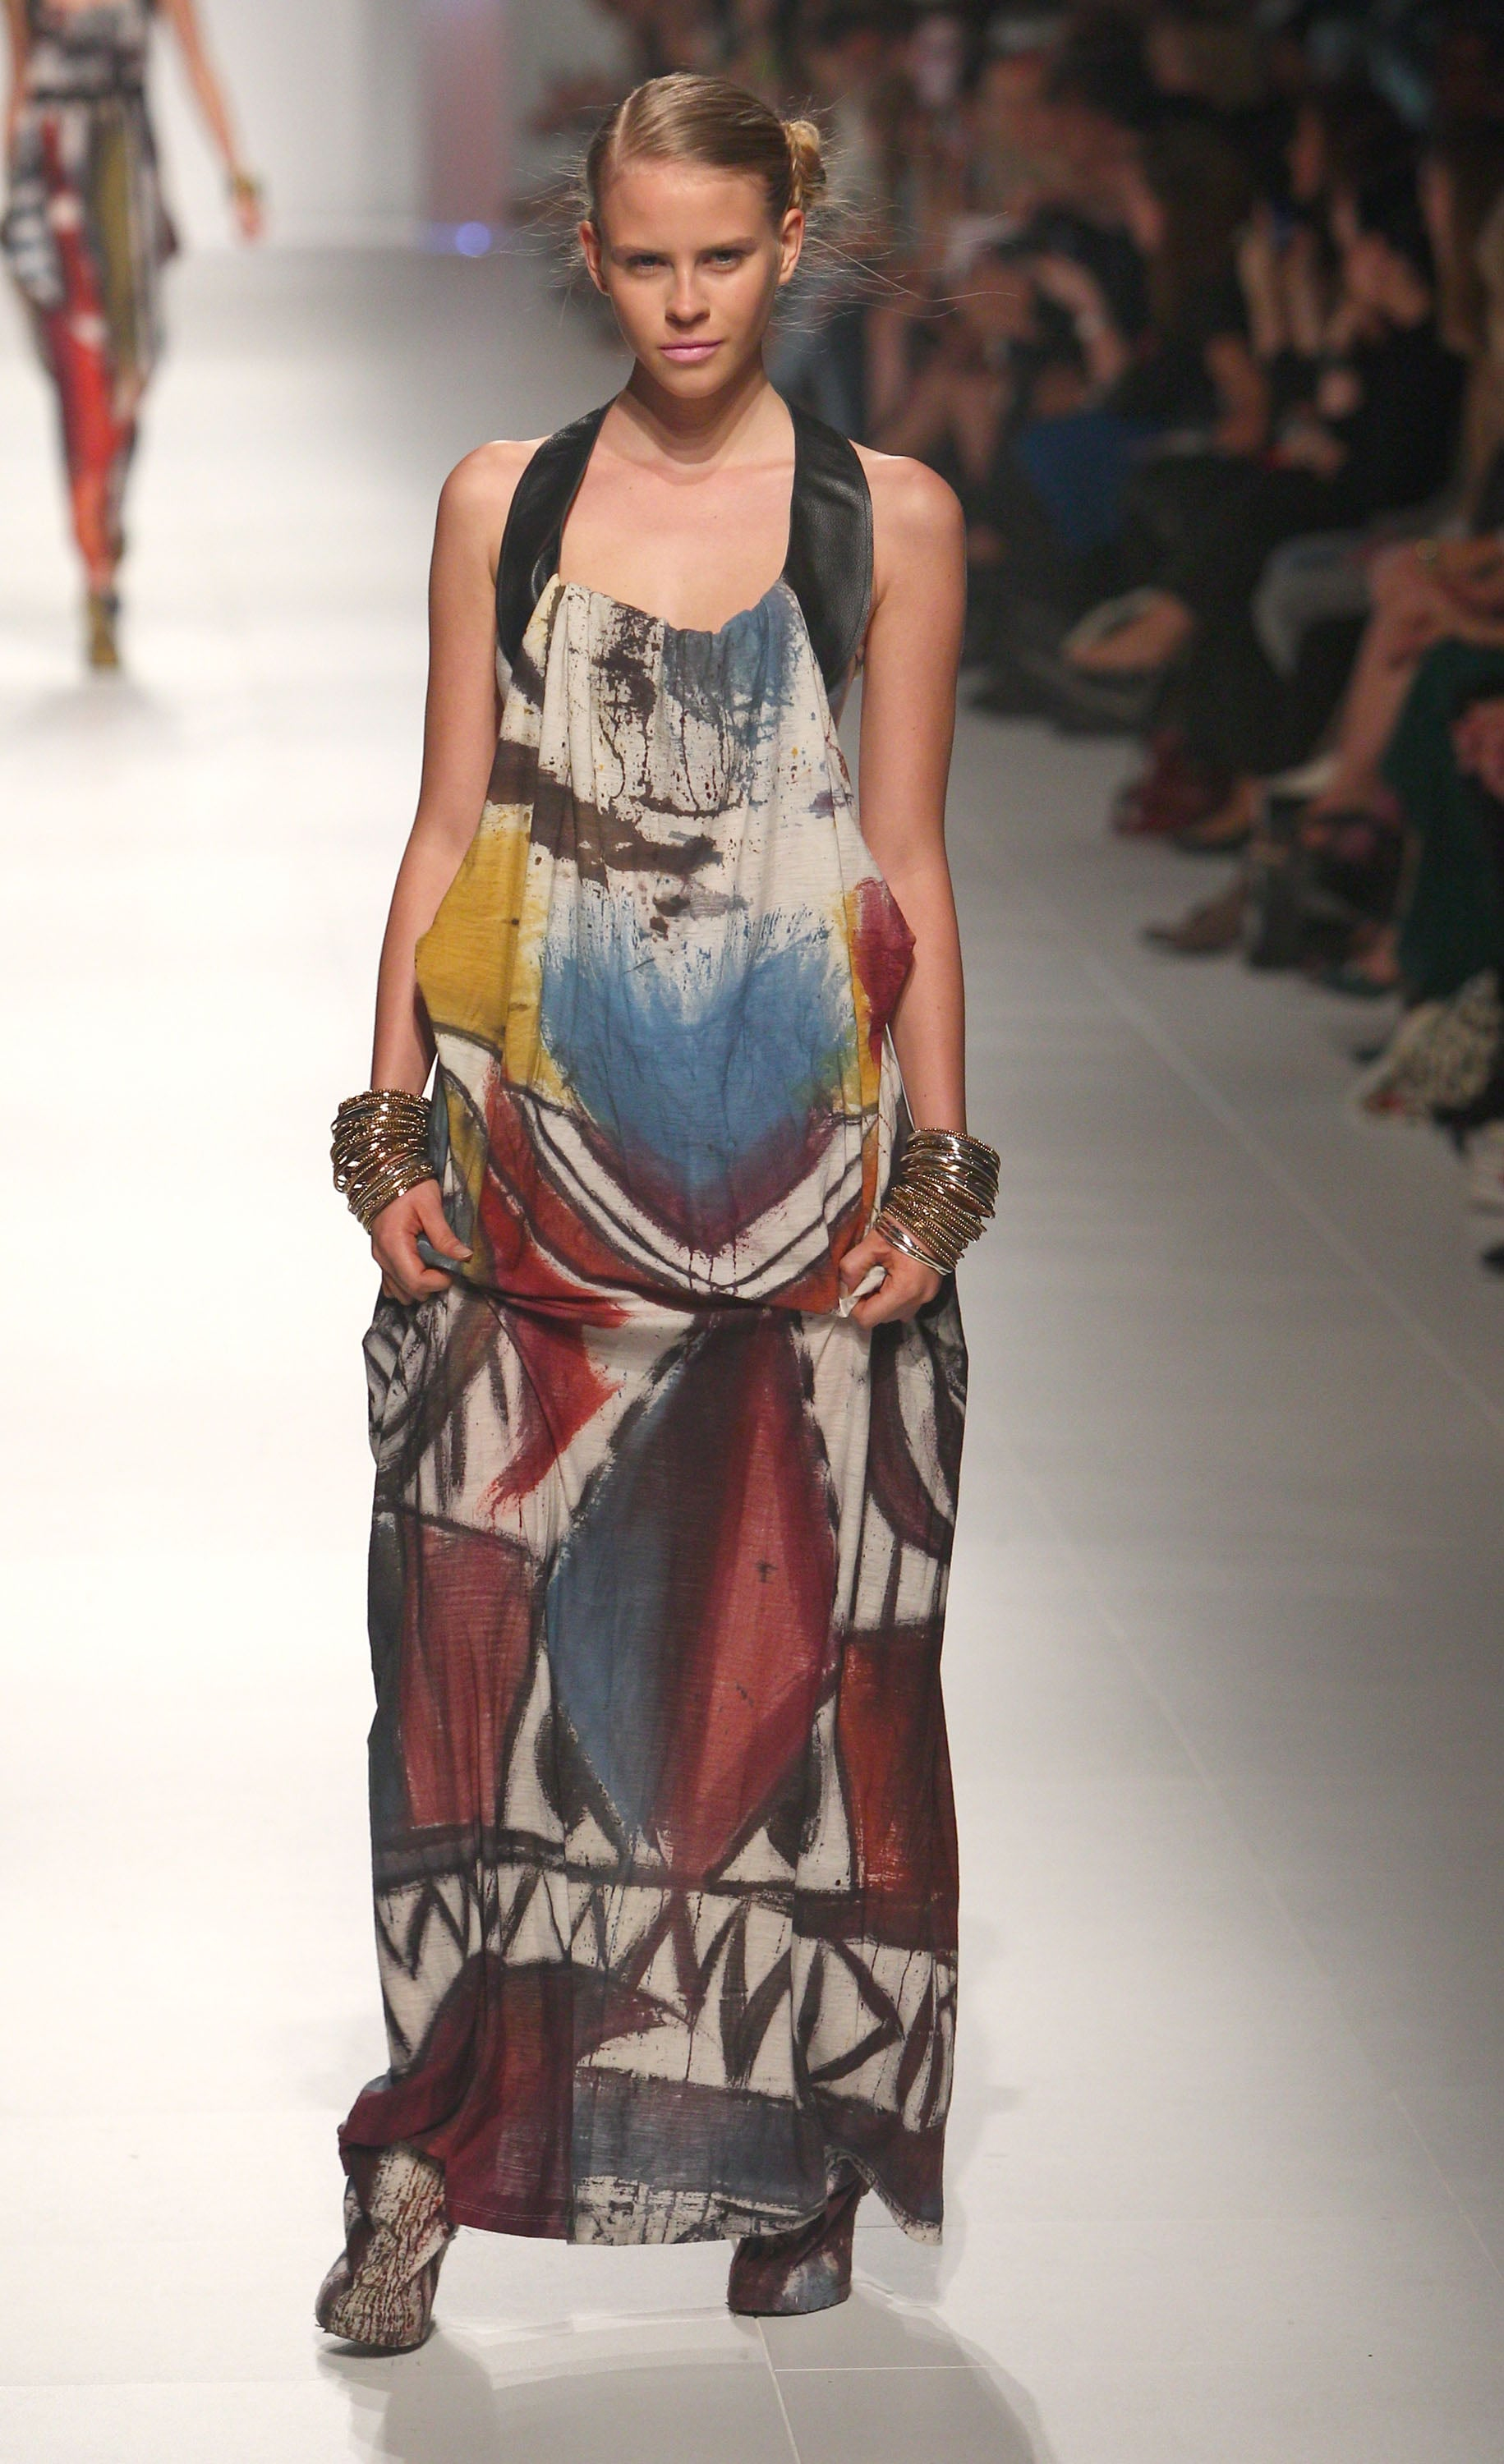 Jason Hewitt's ethnic inspired designs caught our eye at the National Graduate Showcase show.